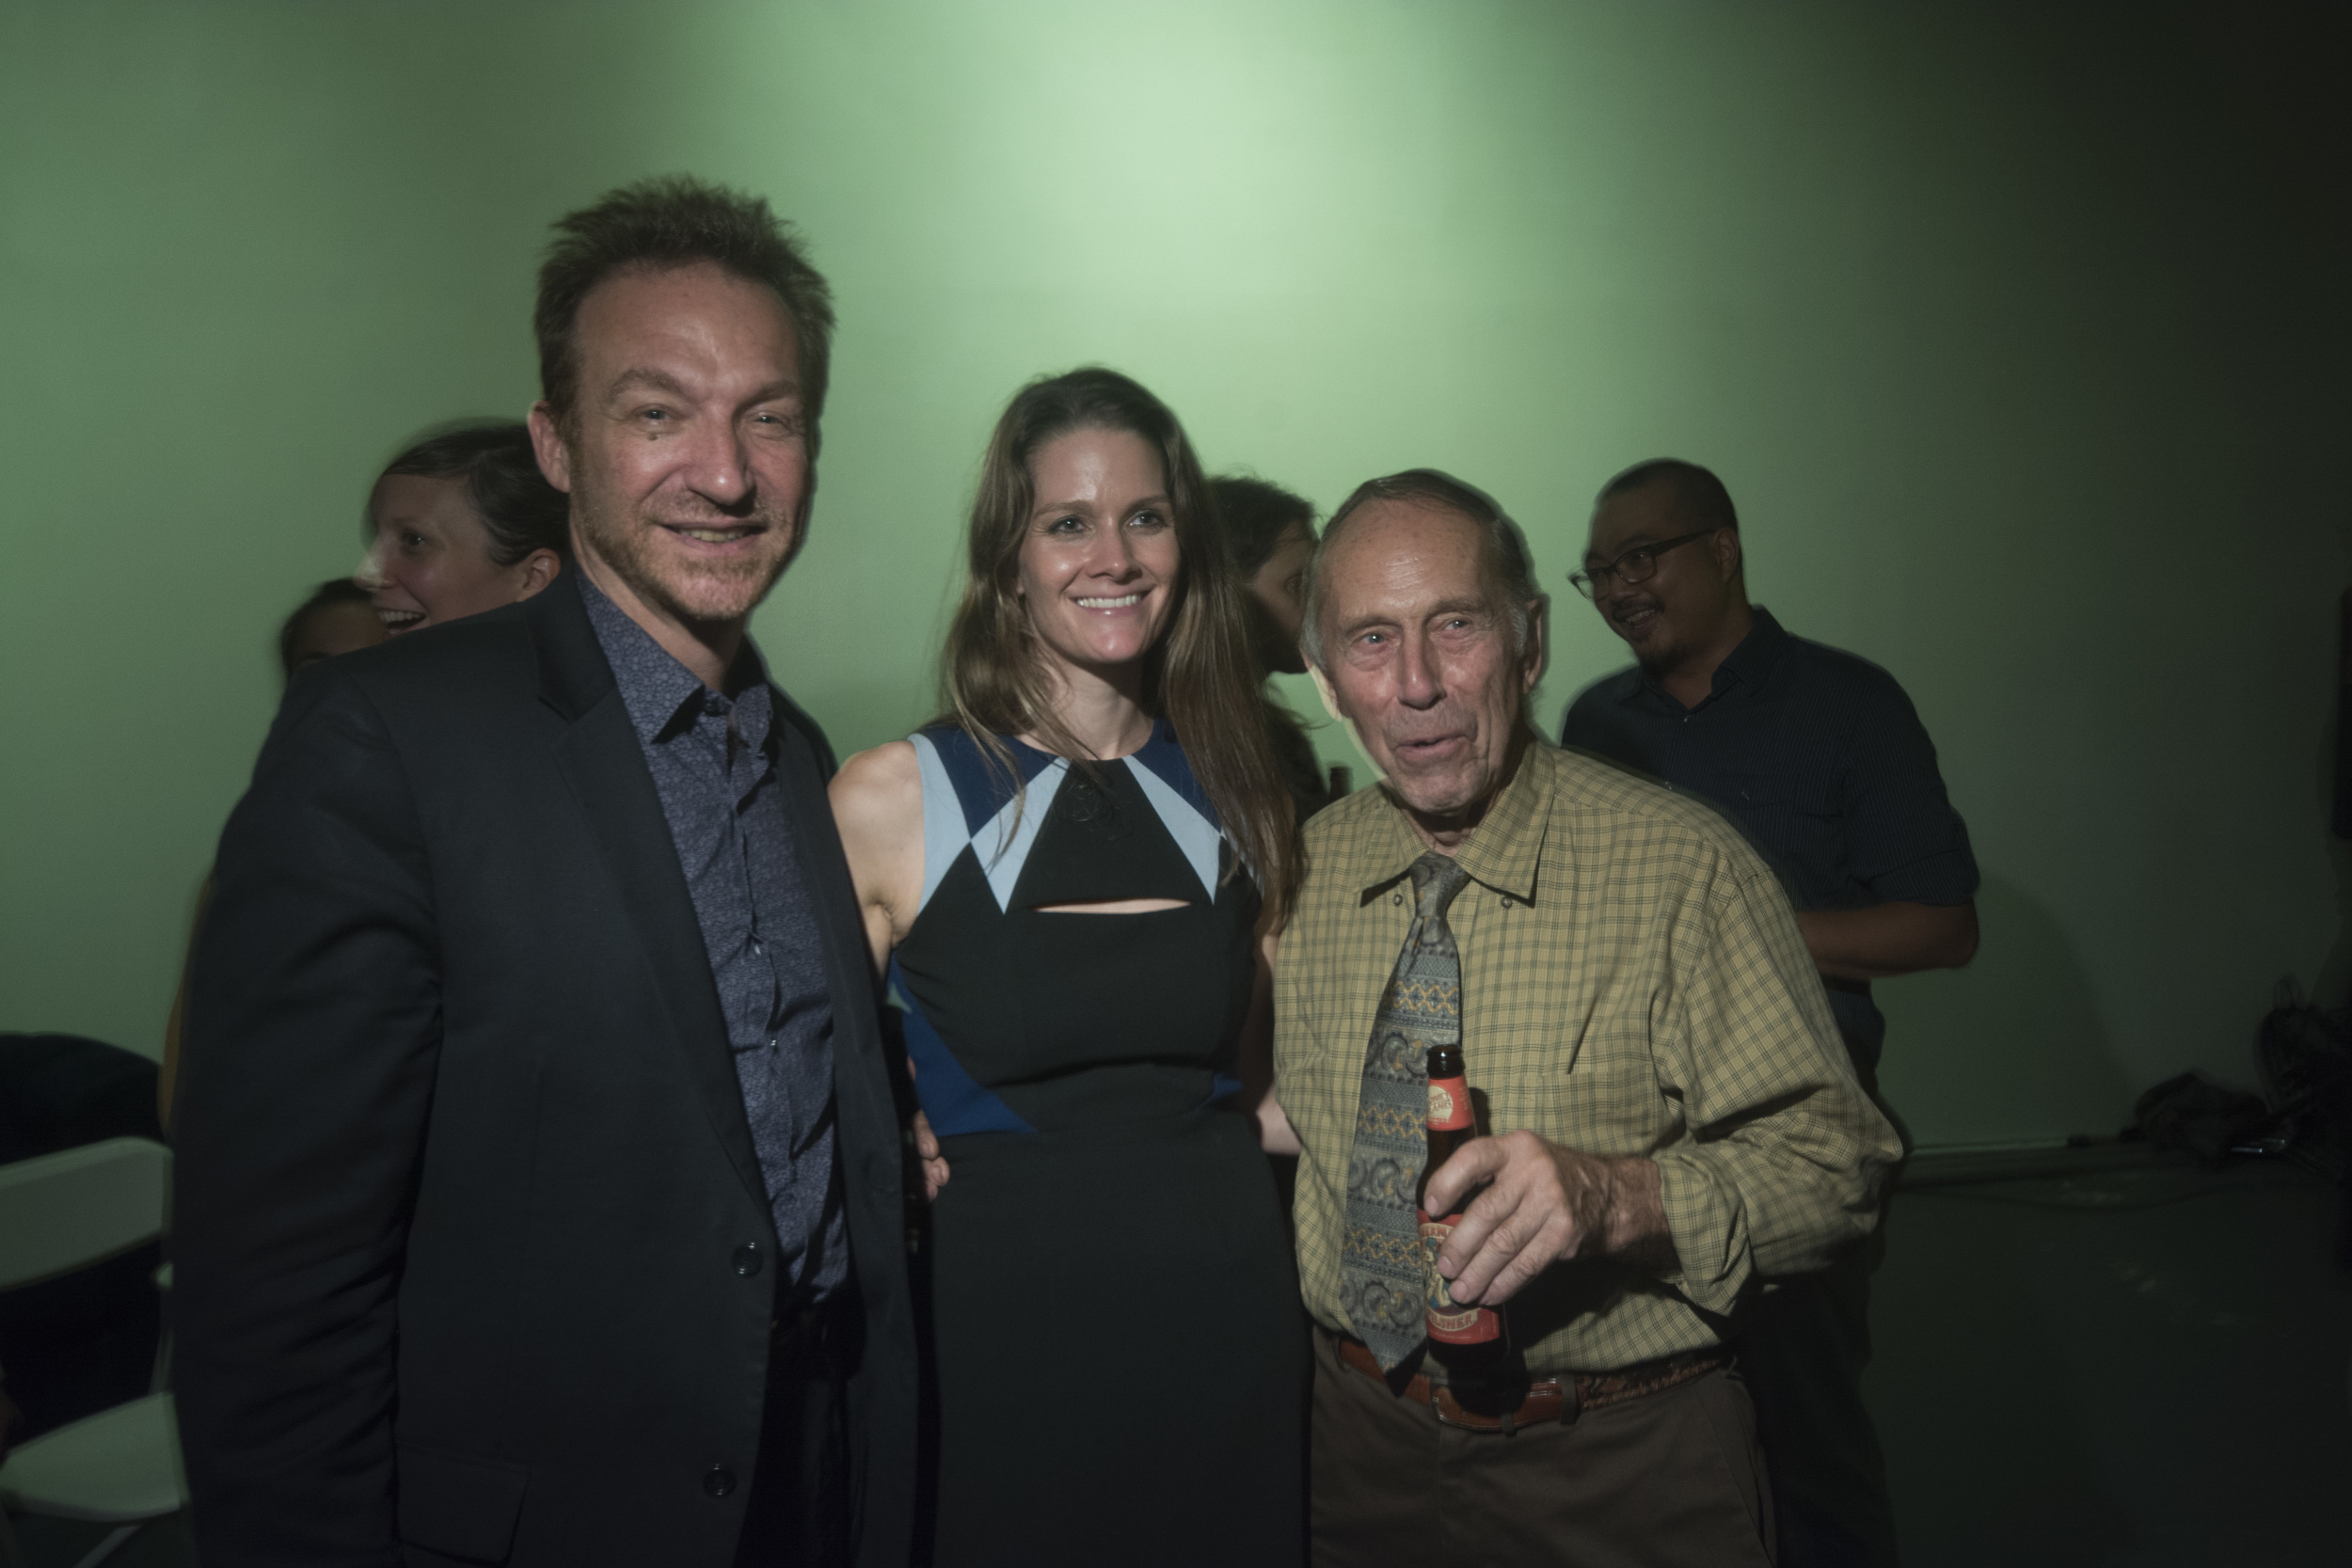 UNY contributing writer Bob Fanuzzi, Nicki Pombier Berger and Ed Fanuzzi